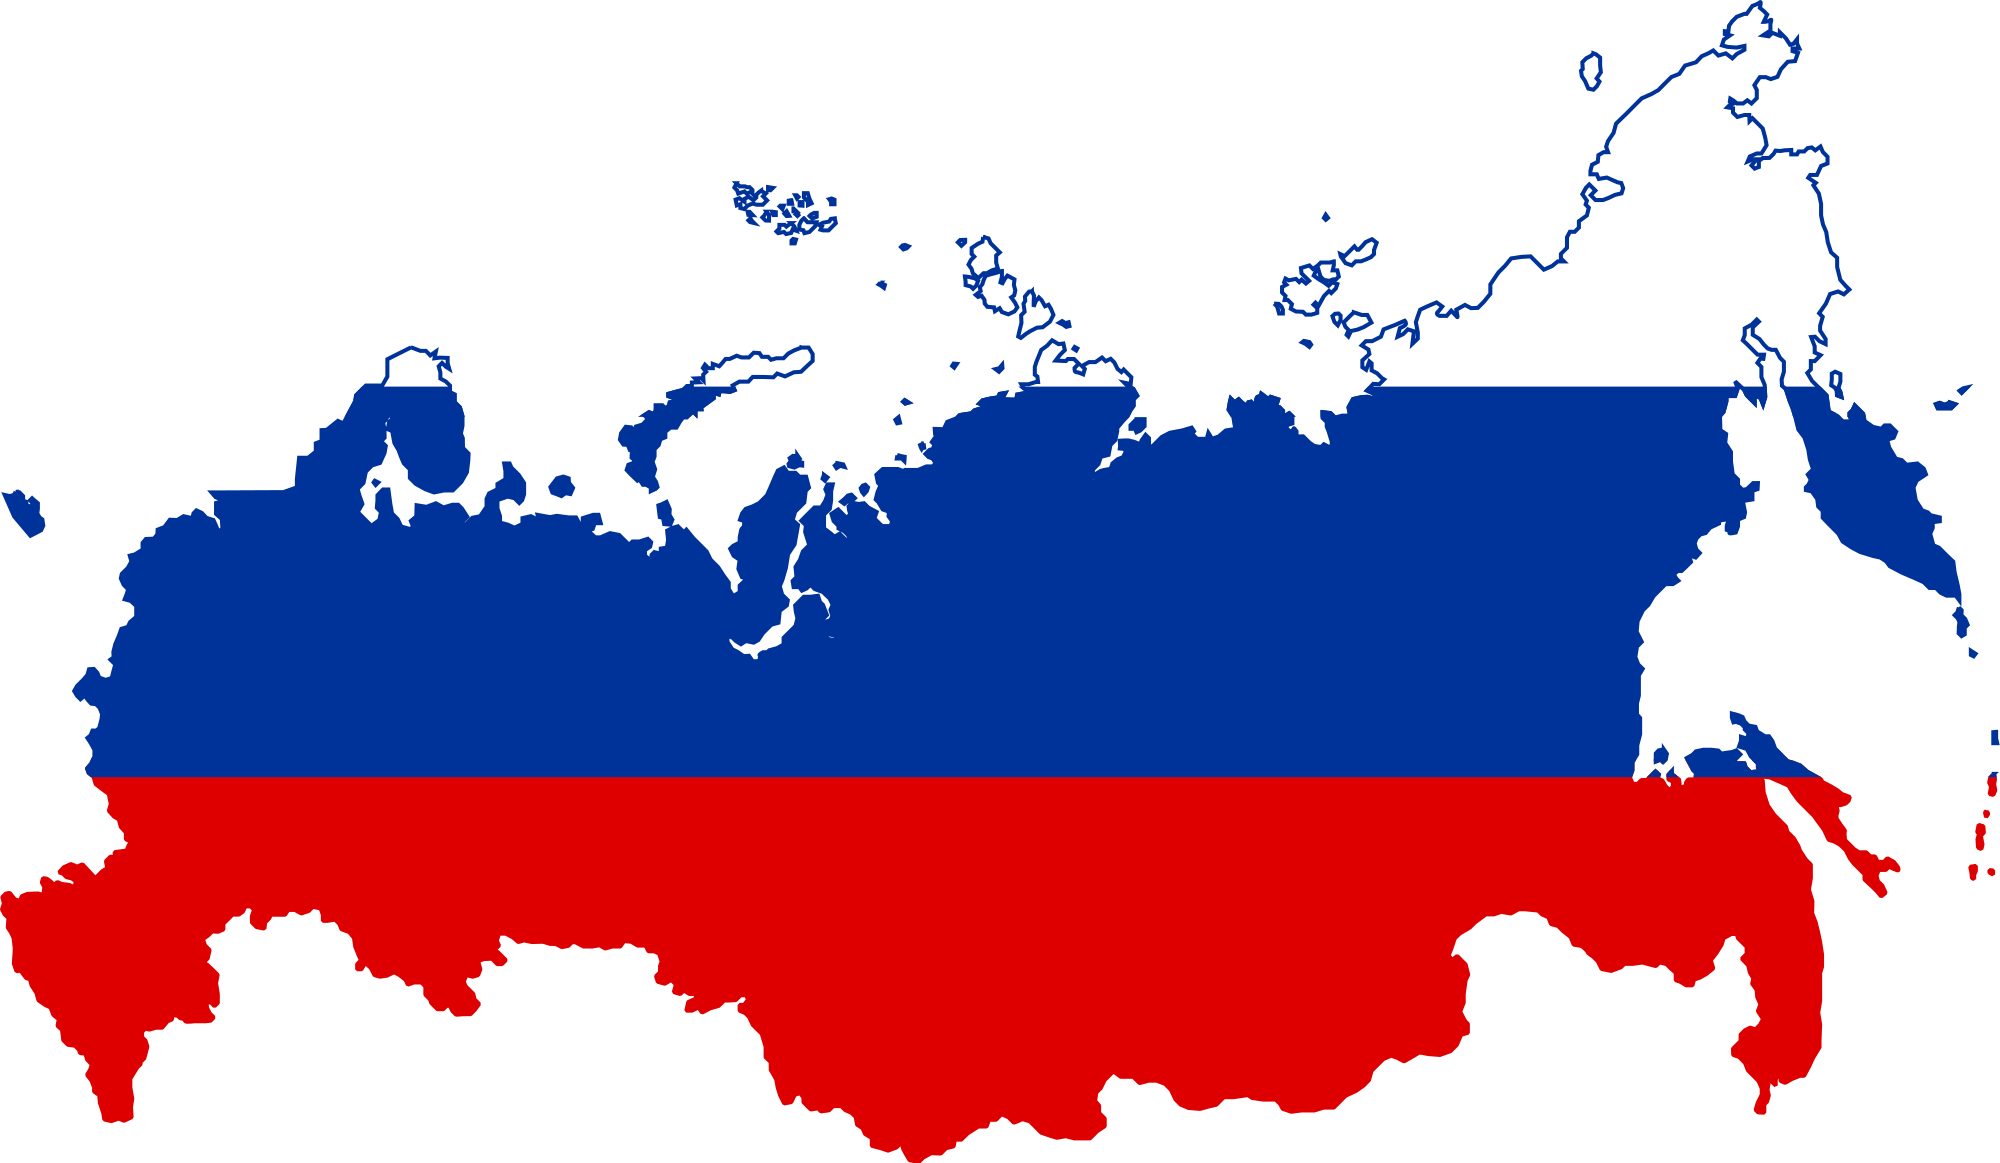 Russian flag png. File map of russia